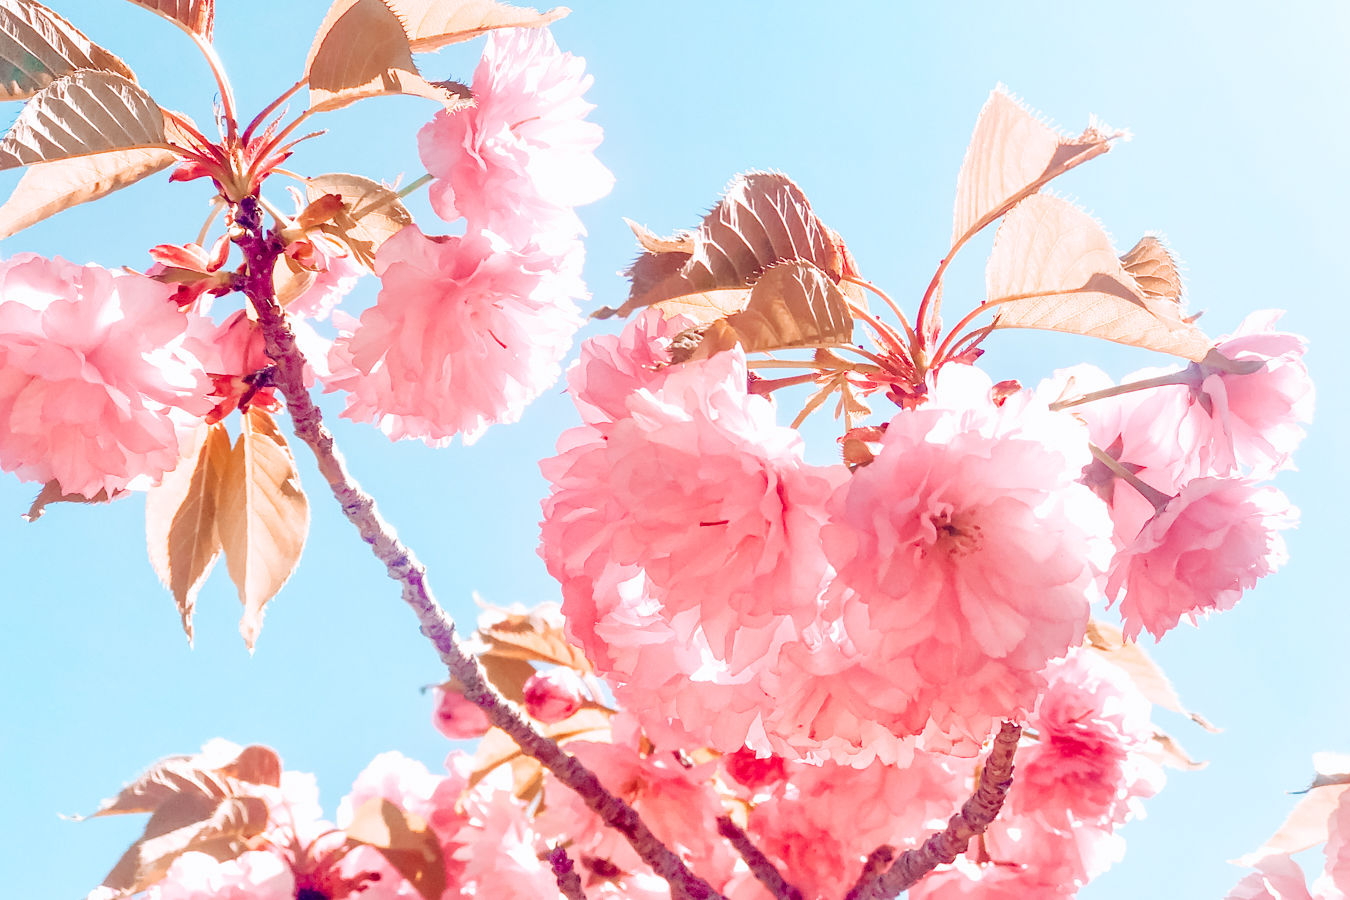 Pink flowers and a blue sky in Albuquerque